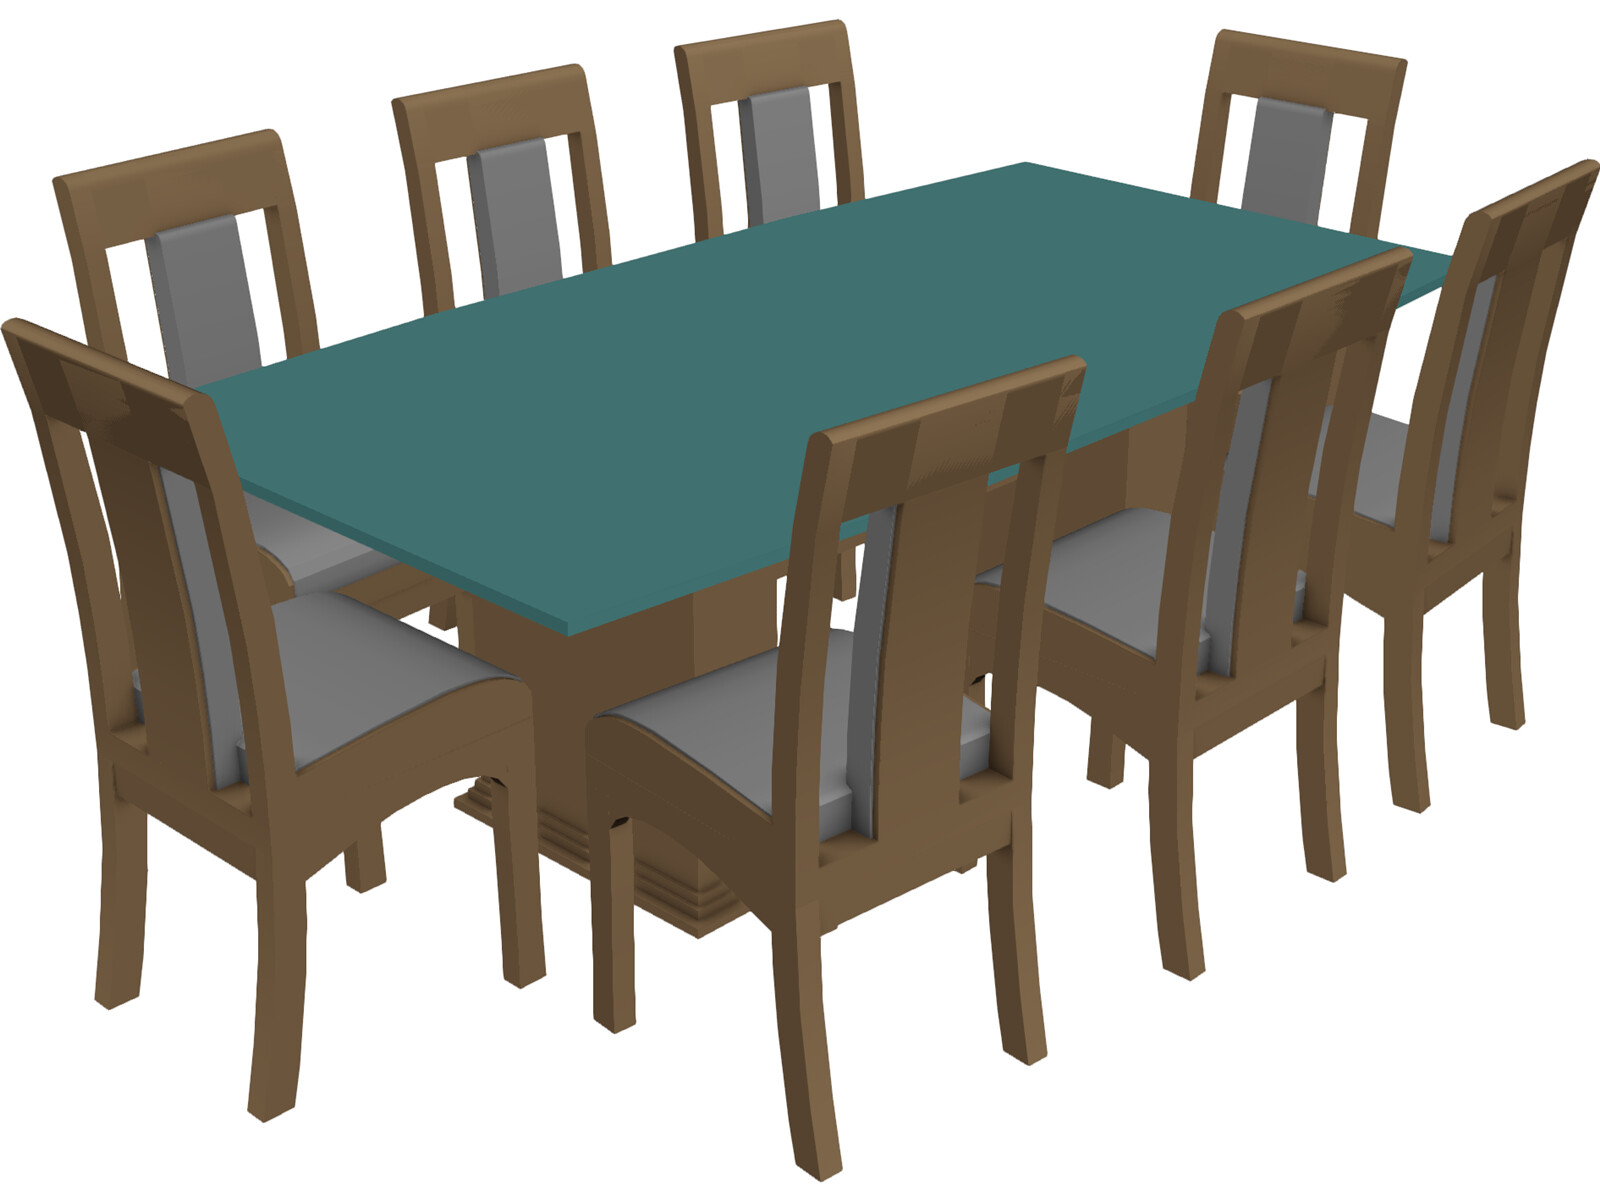 Dining Table and Chairs 3D Model Download 3D CAD Browser : 9057 from www.3dcadbrowser.com size 800 x 600 jpeg 75kB